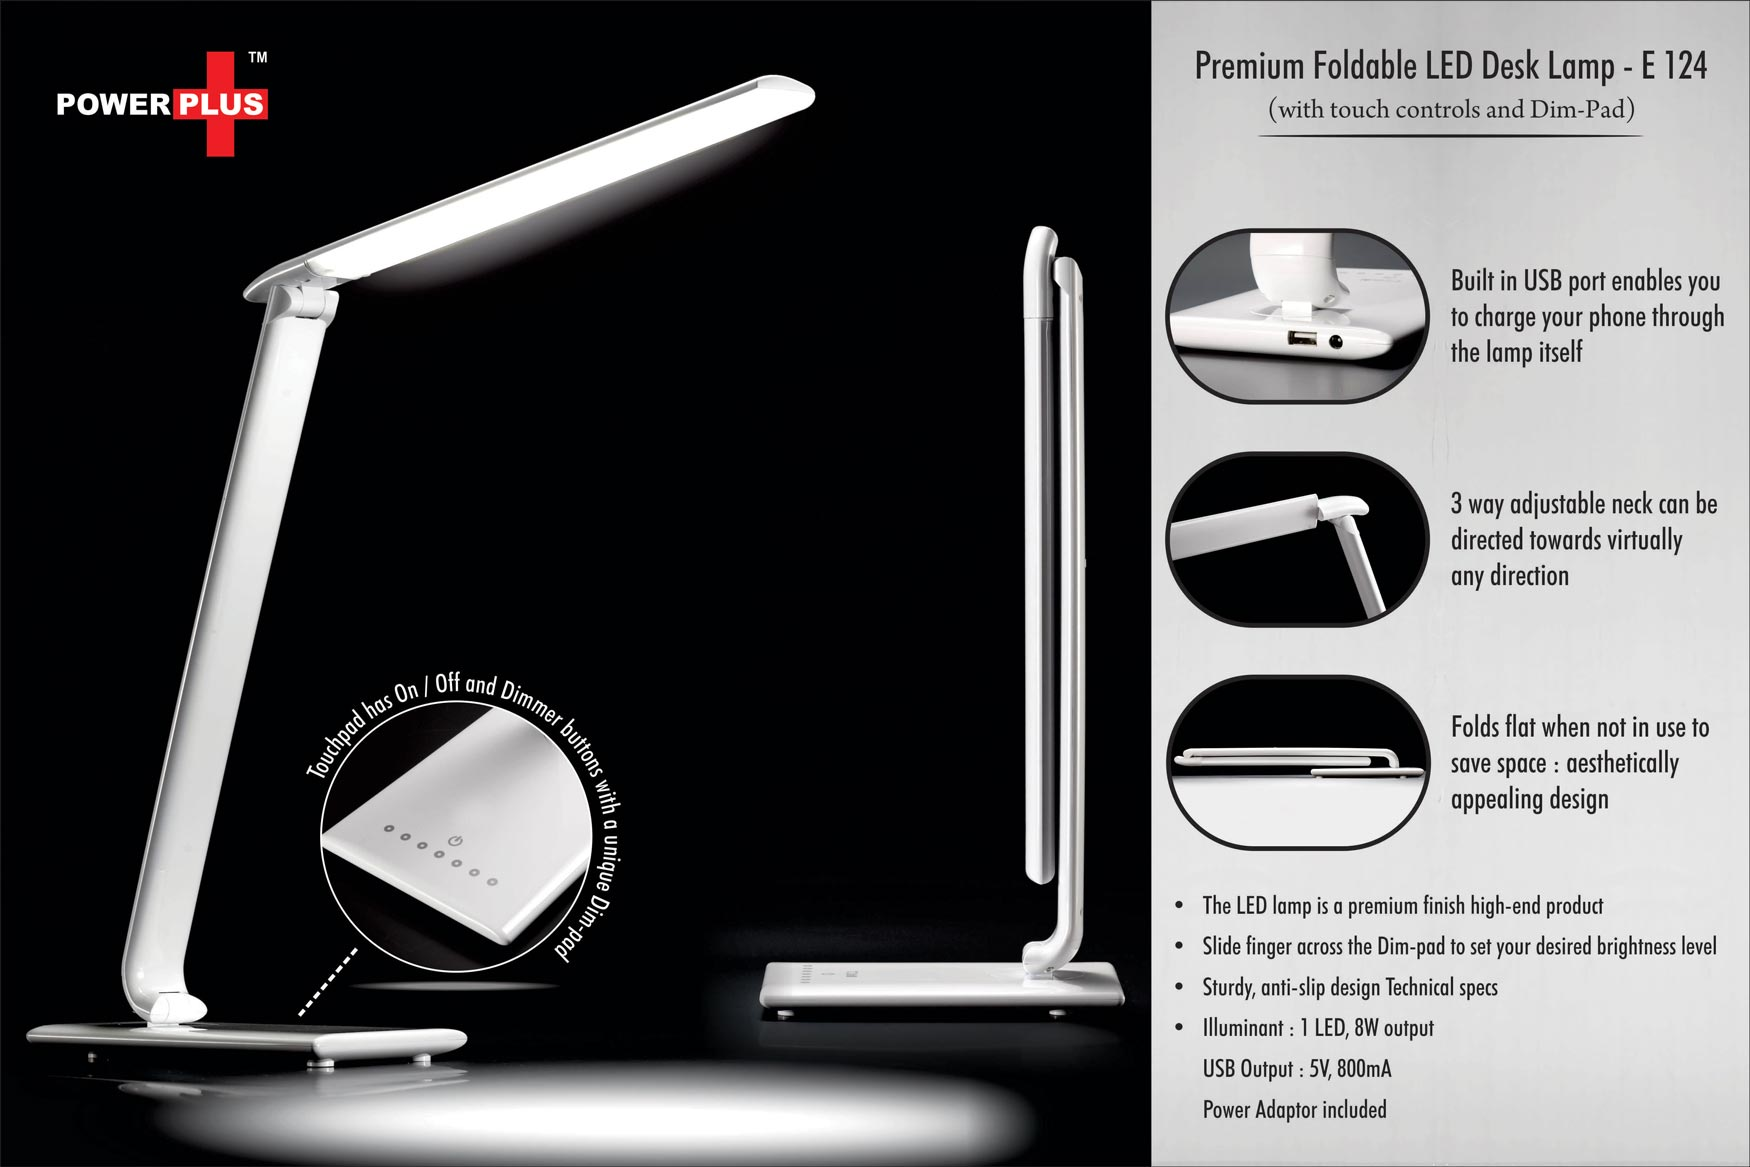 E124 - Power Plus Premium Foldable LED Desk Lamp (with touch controls and Dim - pad)